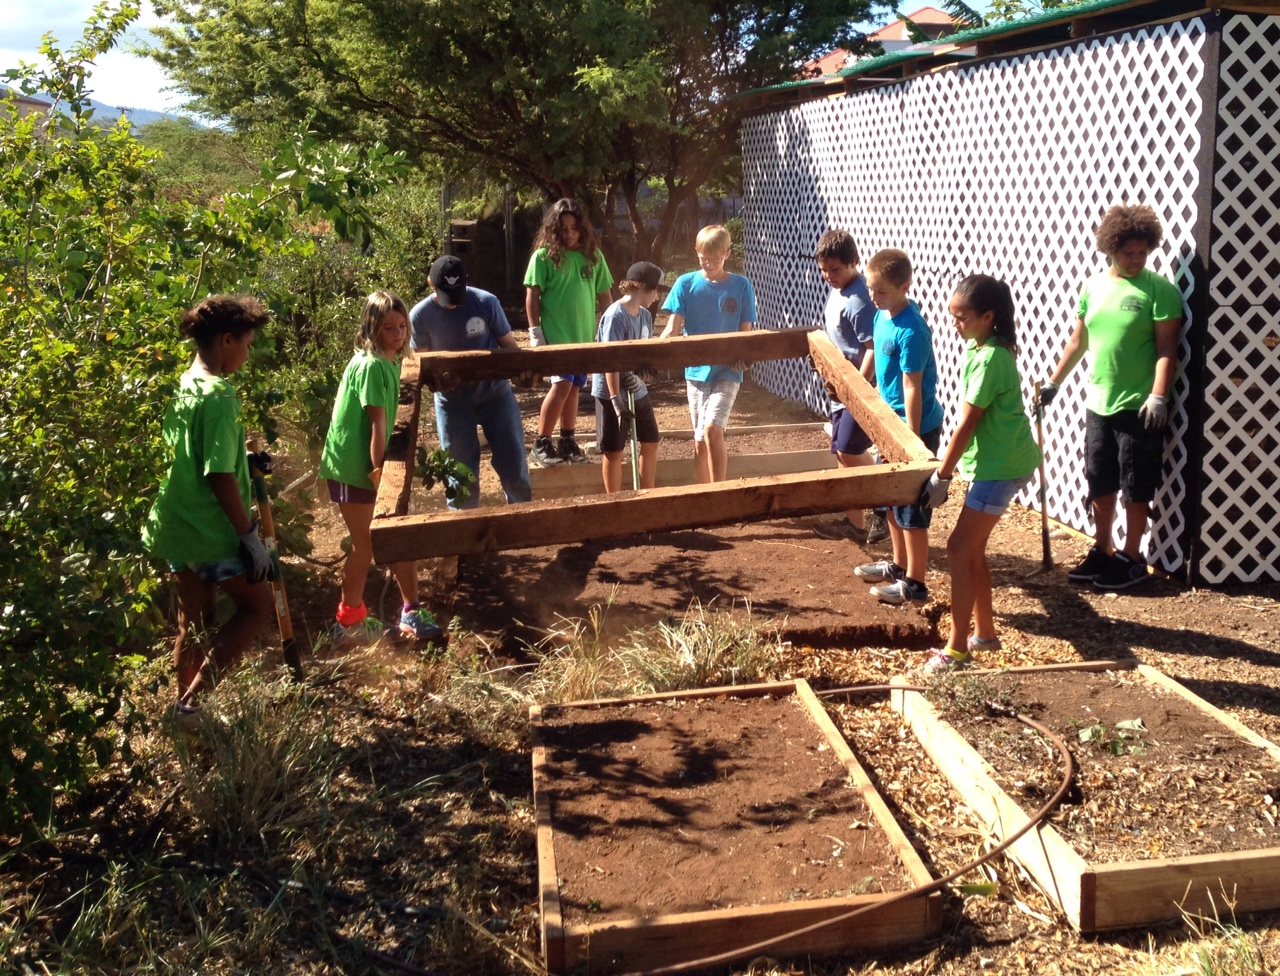 Kihei Charter Middle School Grows Some Good STEAM Projects